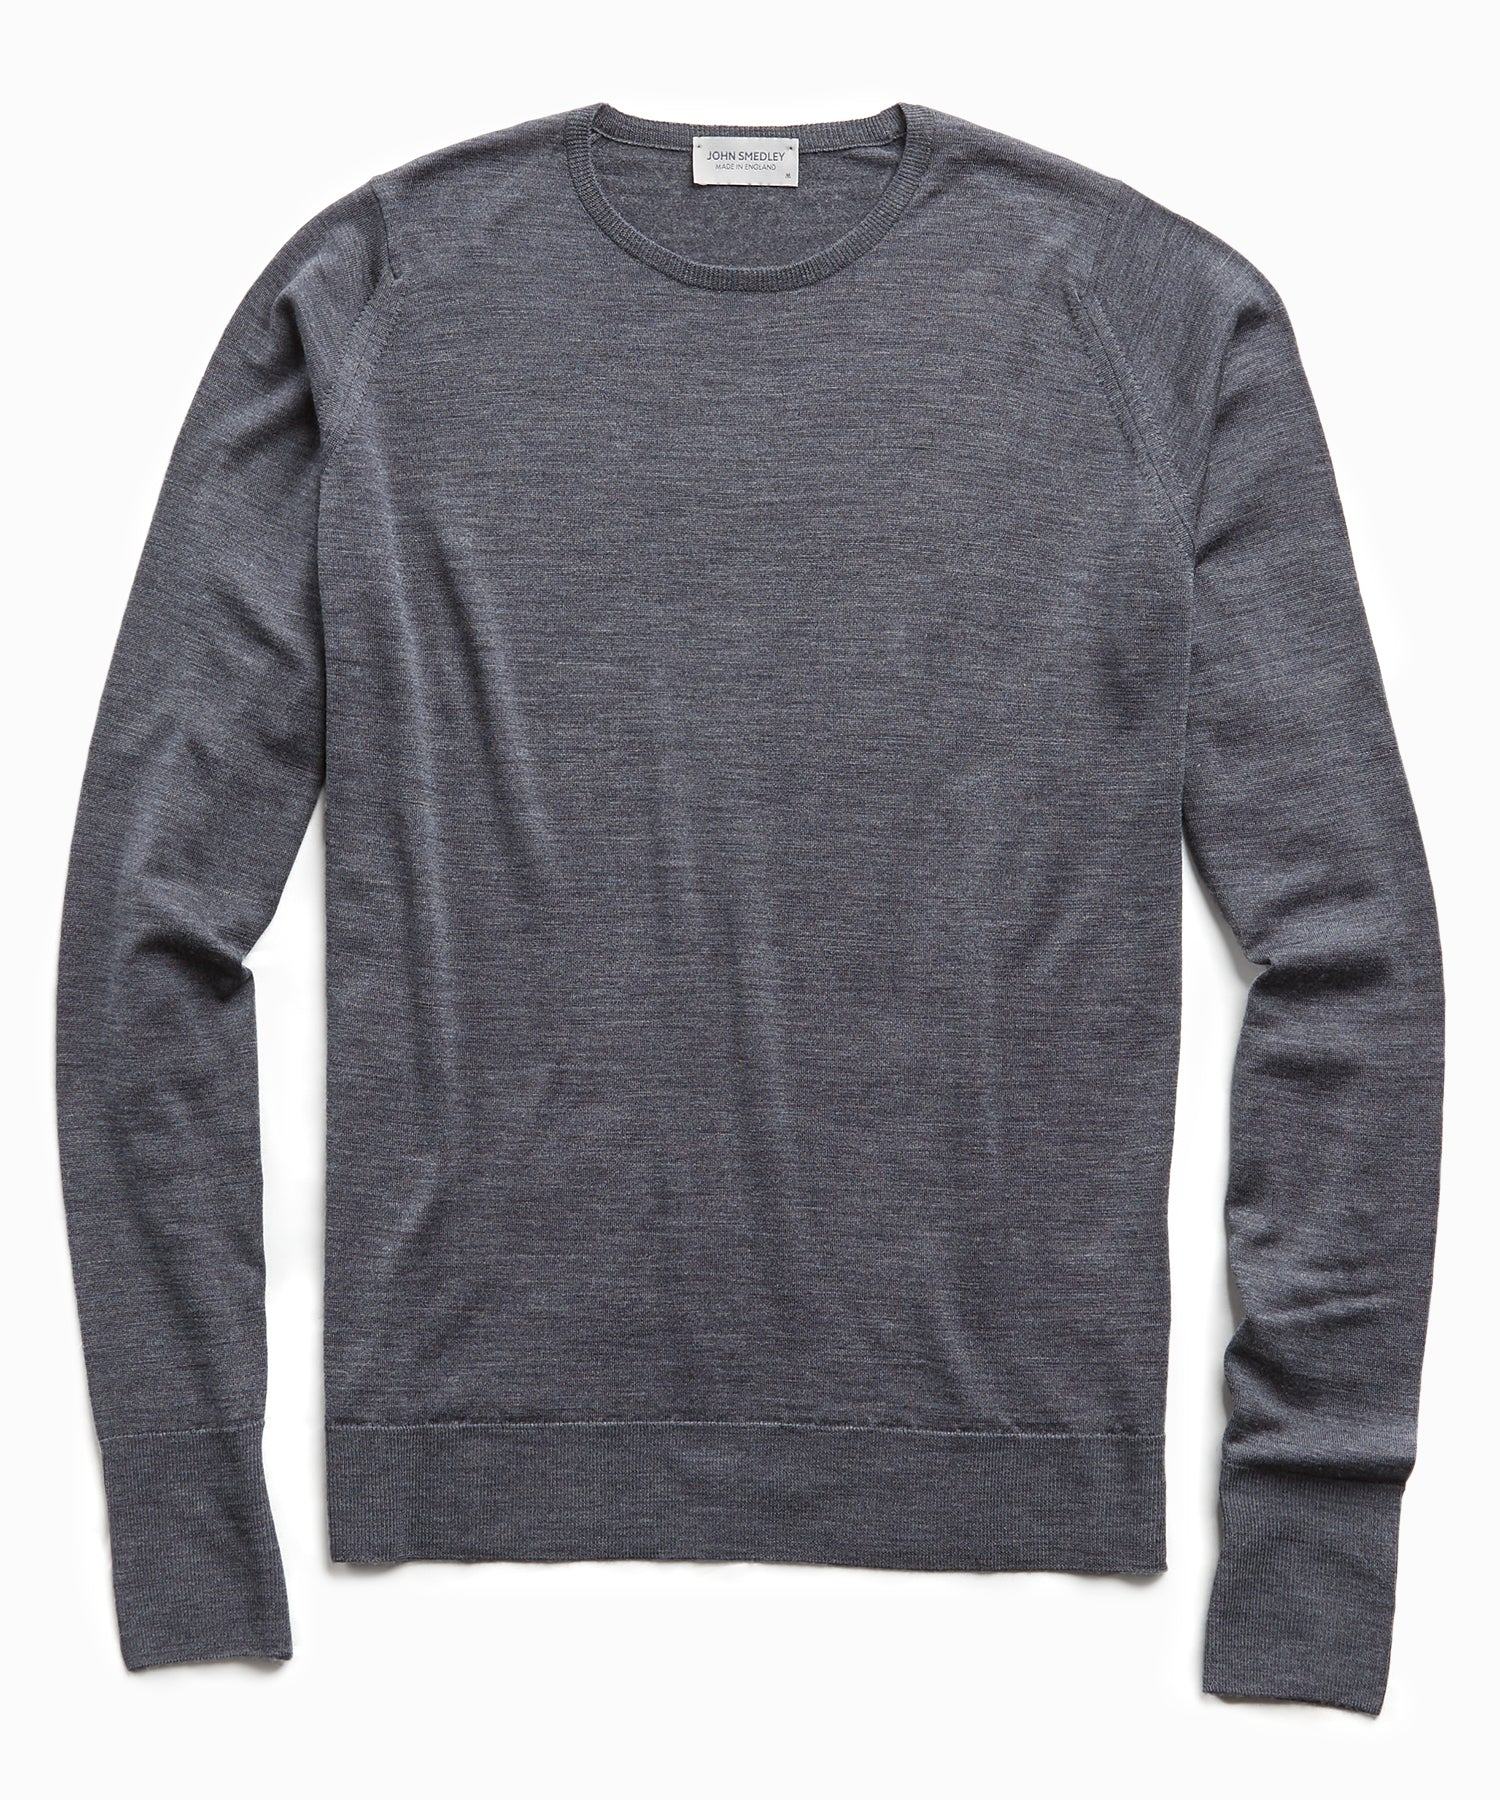 John Smedley Easy Fit Merino Crew in Charcoal